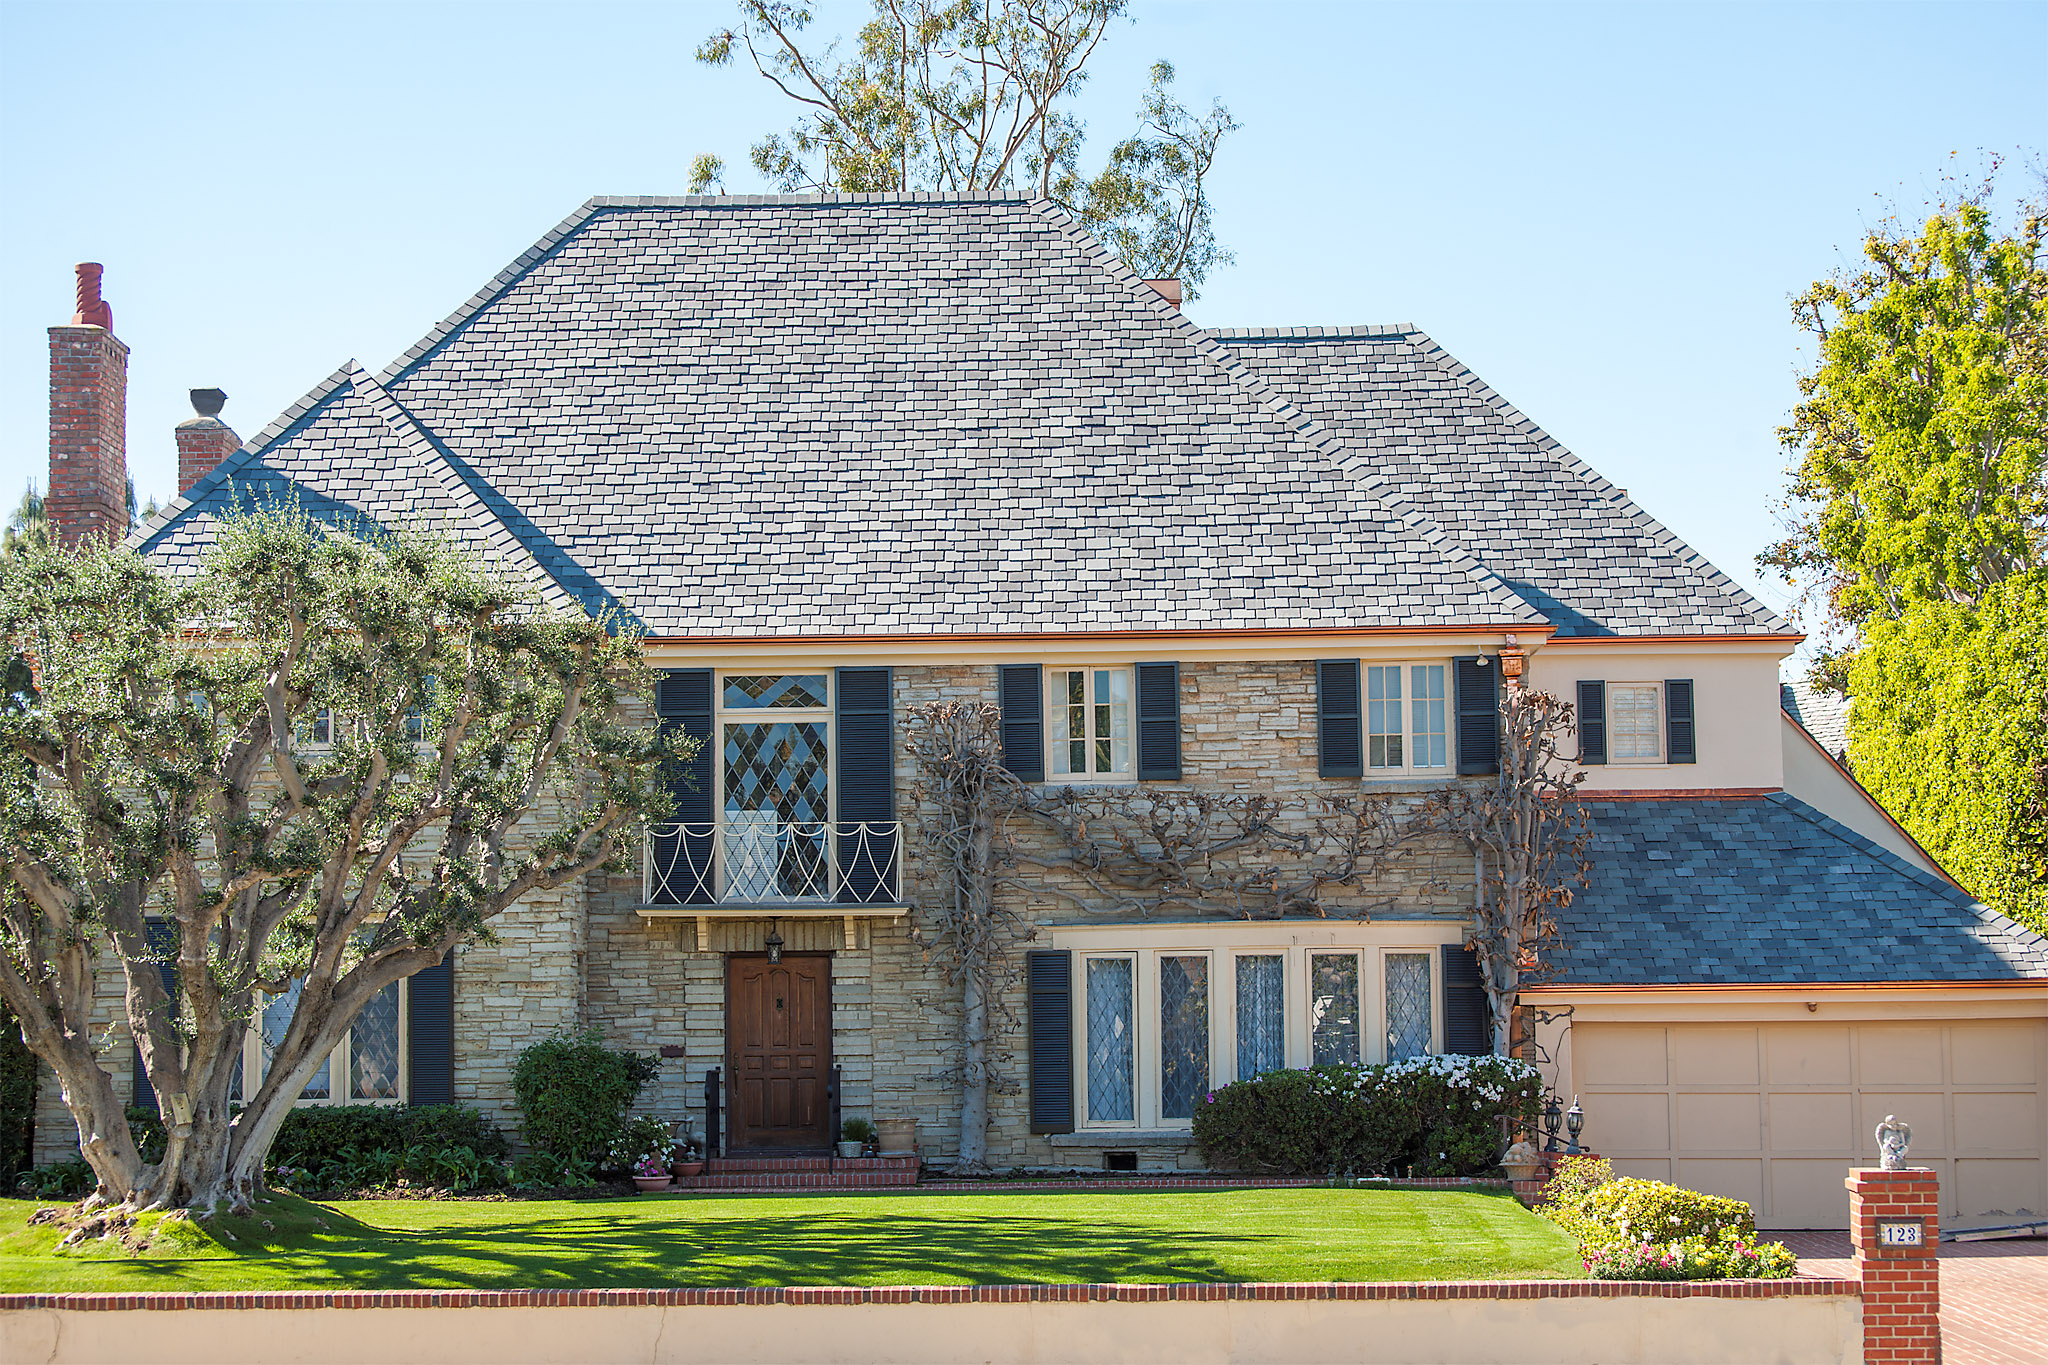 Slate roof with custom copper dormers, Hancock Park, Los Angeles